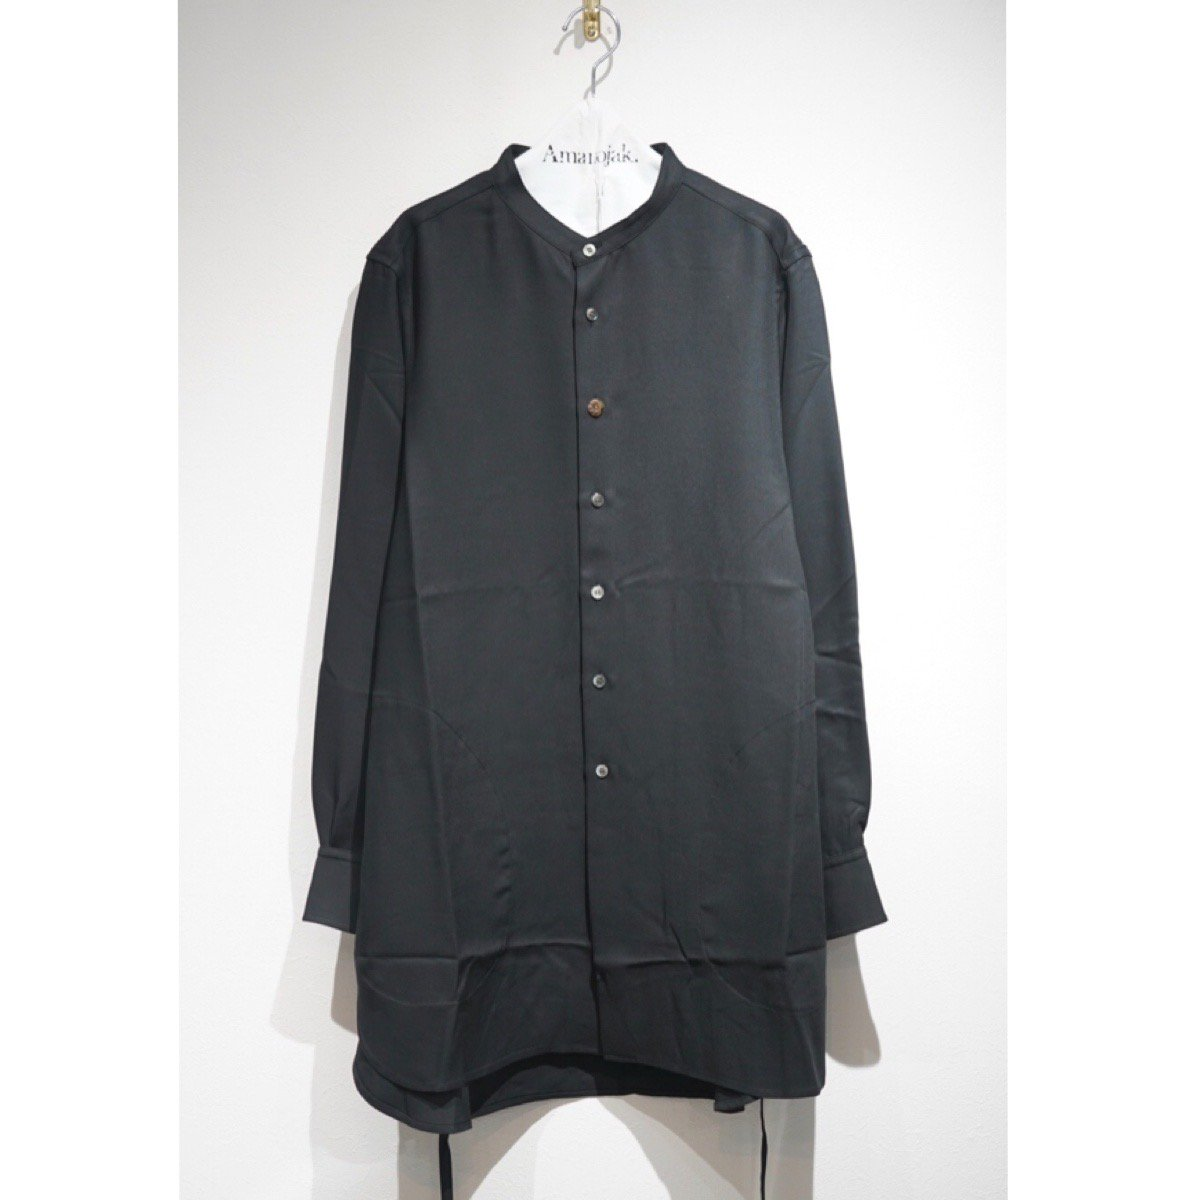 PRASTHANA-STRINGS BAND COLLAR SHIRTS Ver.2 BLACK